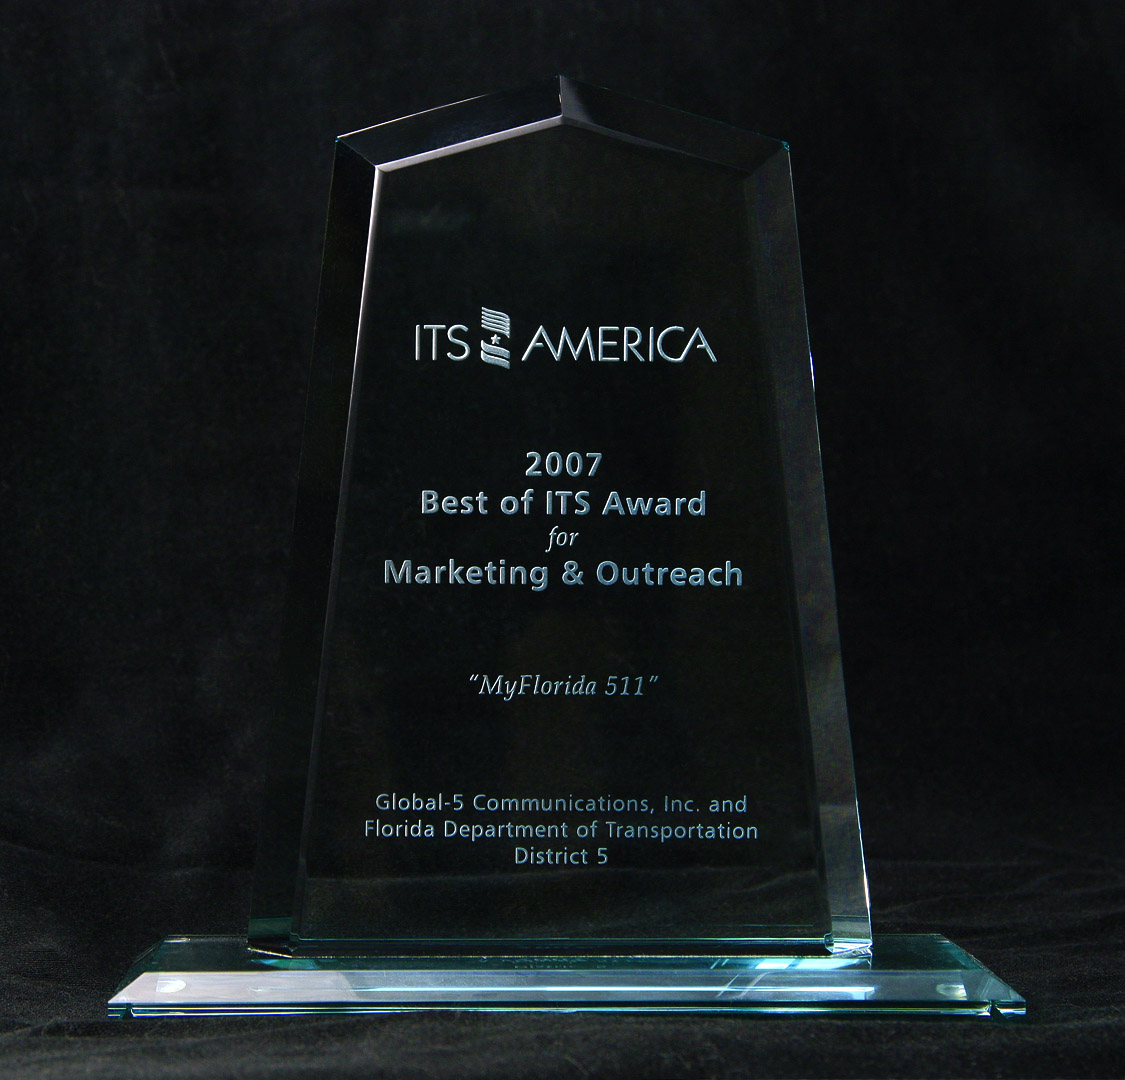 ITSA's 2007 Best of ITS Award